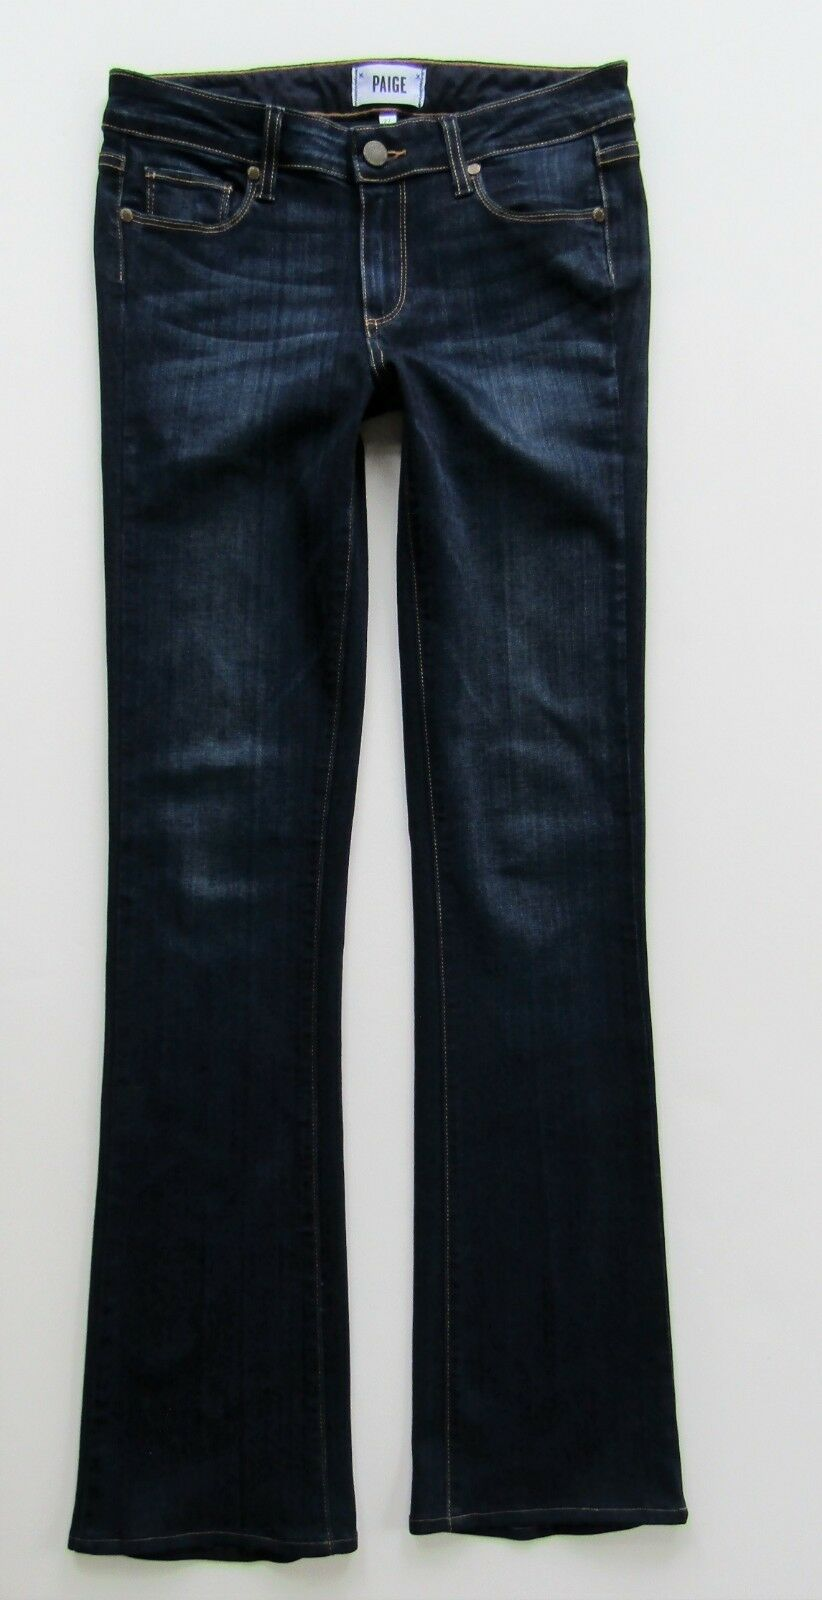 Paige Manhattan Slim Boot Cut Transcend Jean in Armstrong, Dark - Size 27 x 31.5